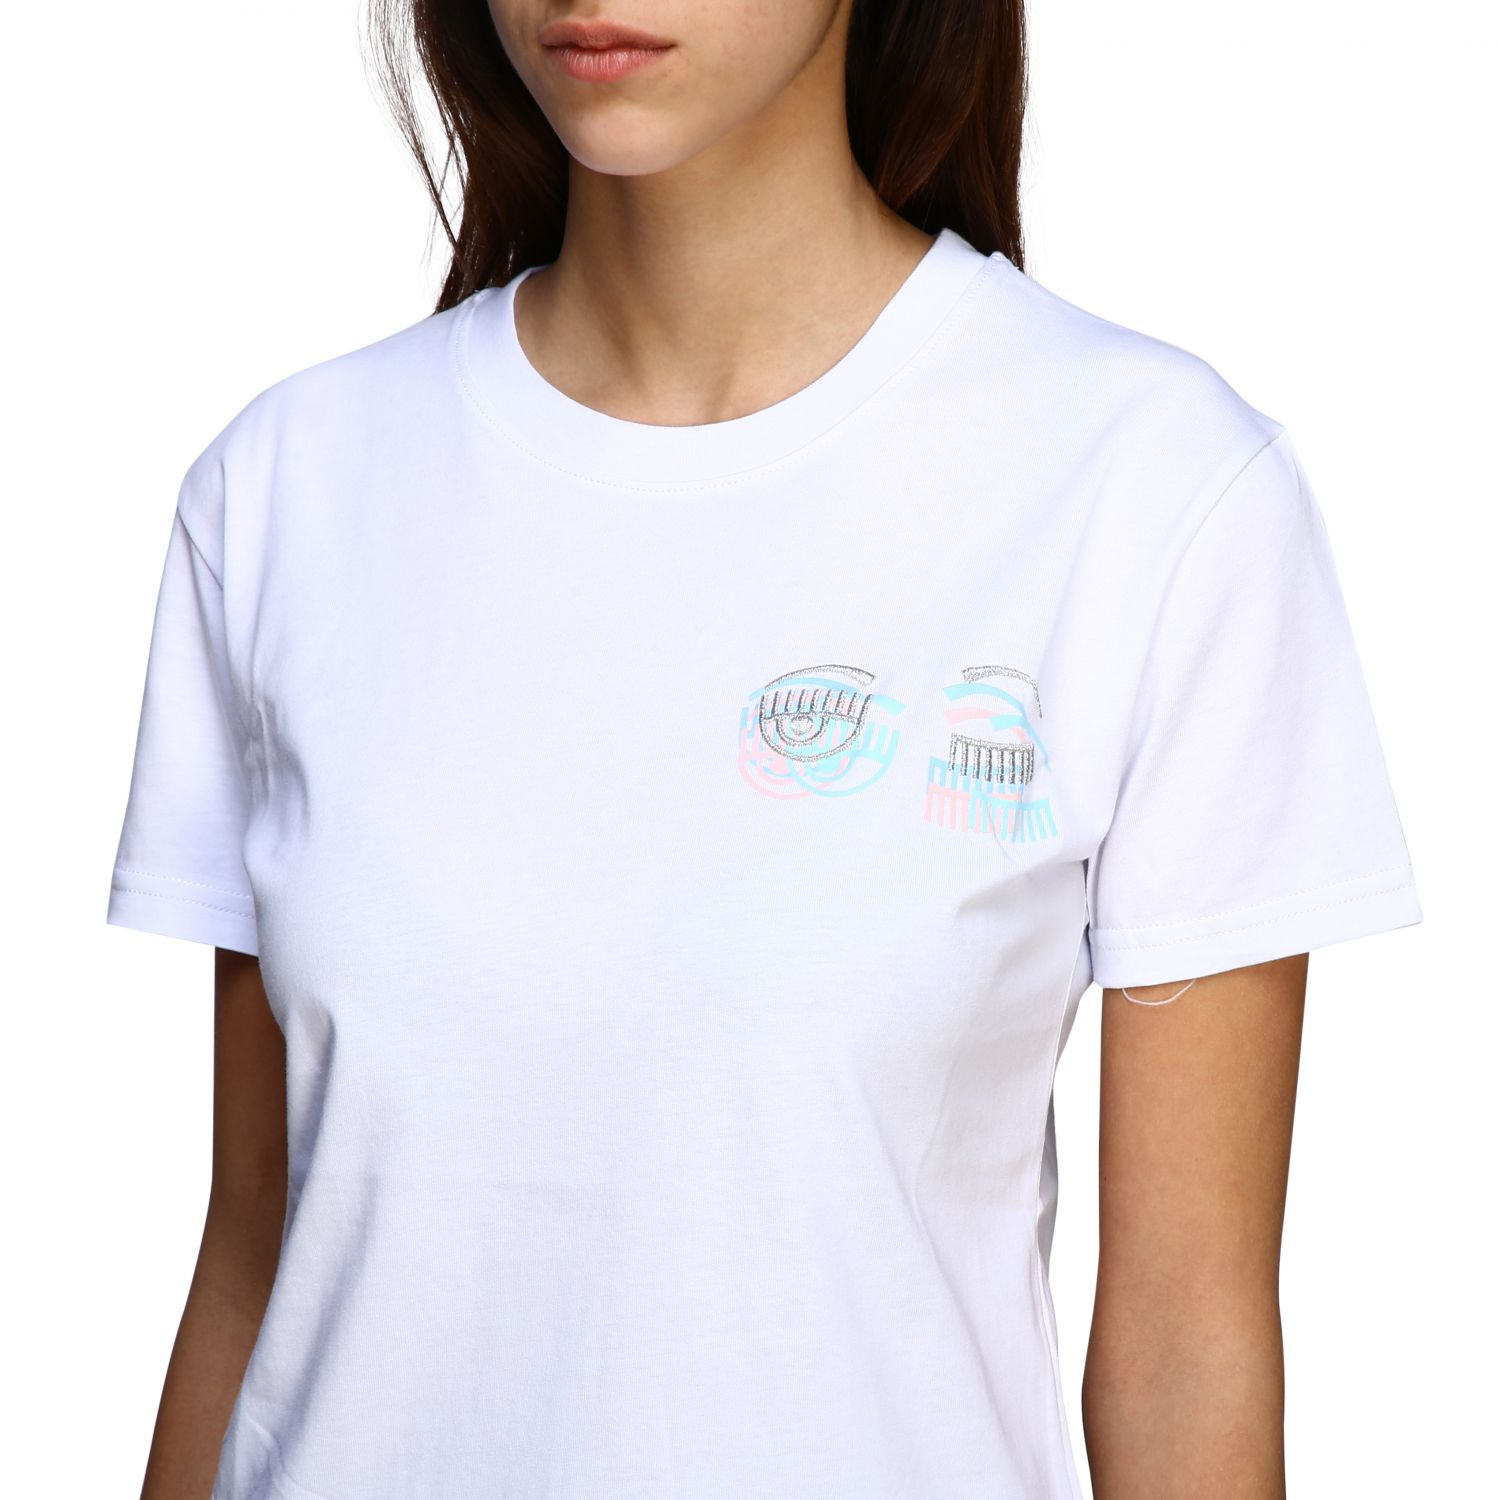 T-shirt women Chiara Ferragni white 5